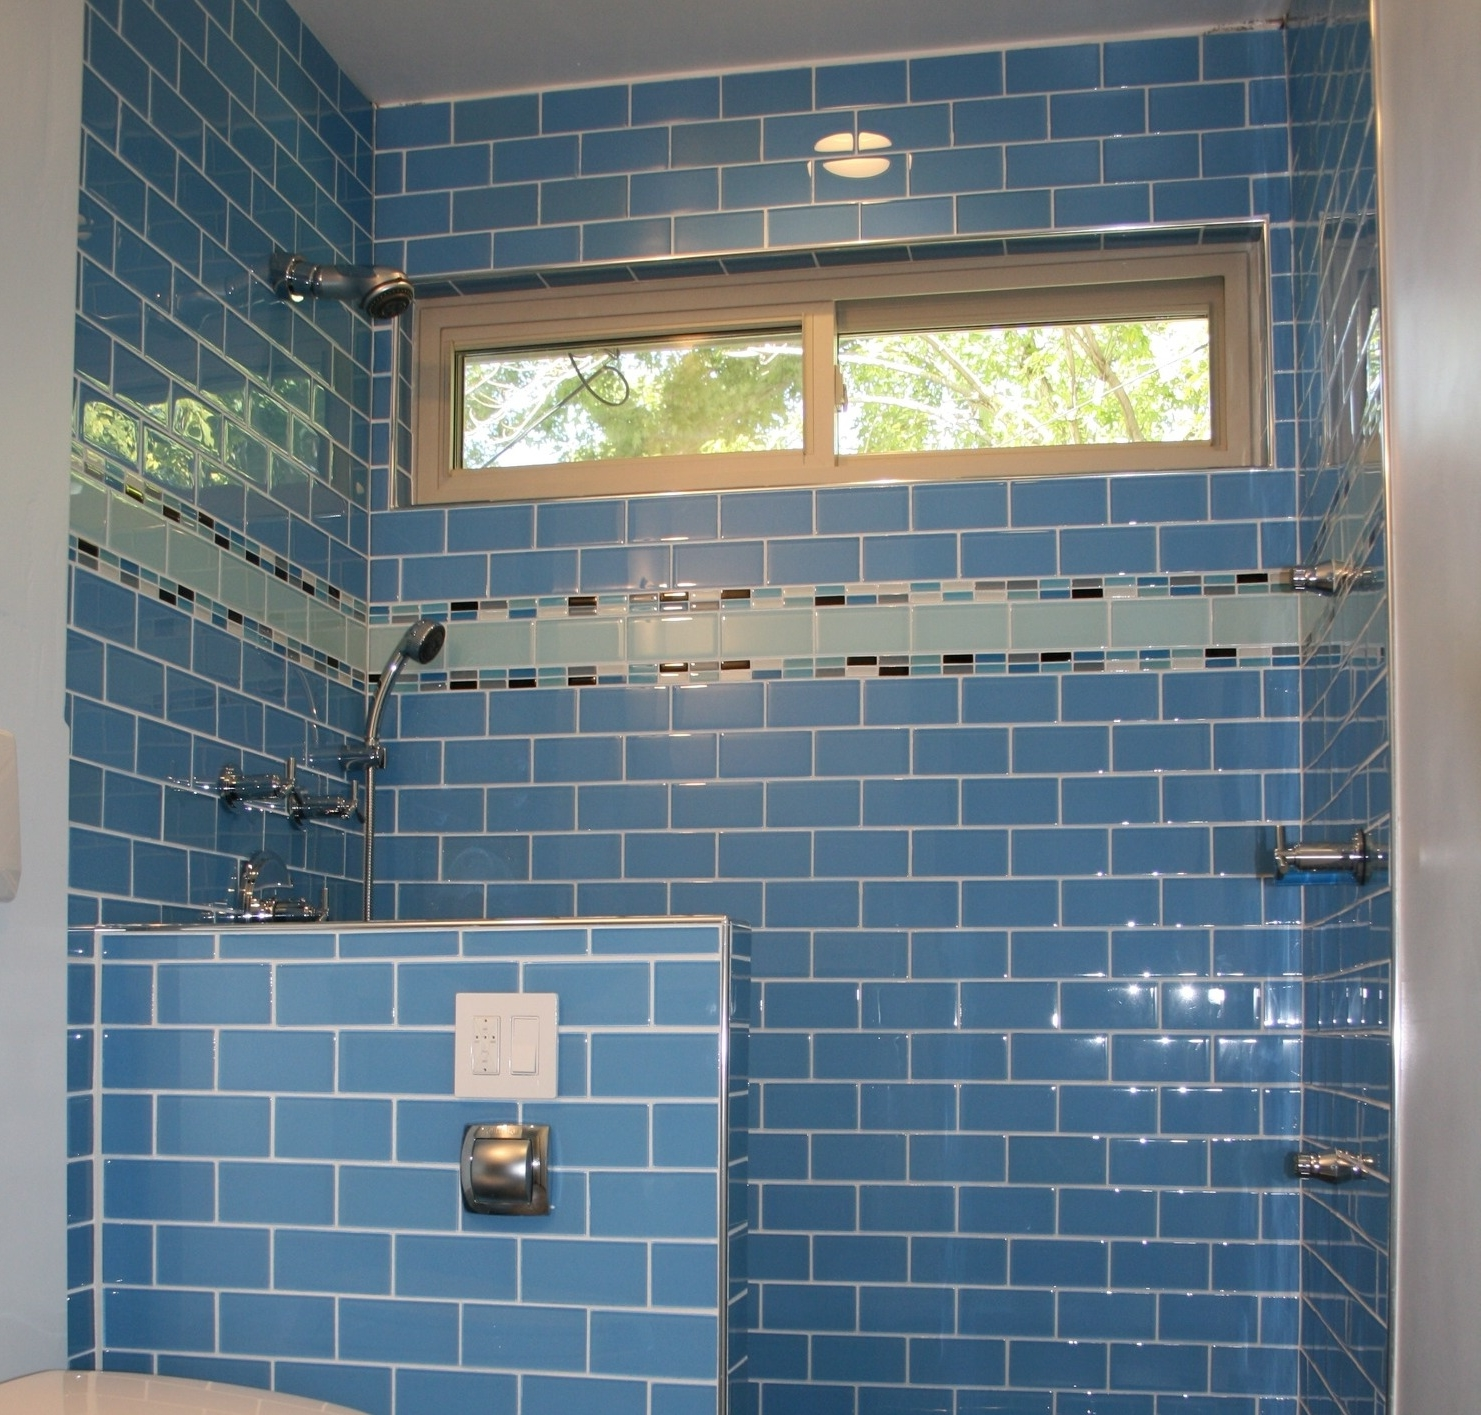 Kitchen Beauty Subway Tile For Kitchen Decorations Ornament Ideas Outlet Backsplash Bathrooms Beveled Shower Tiles You Need To Subway Tile For Kitchen Your Way To The Top And Here (View 14 of 38)